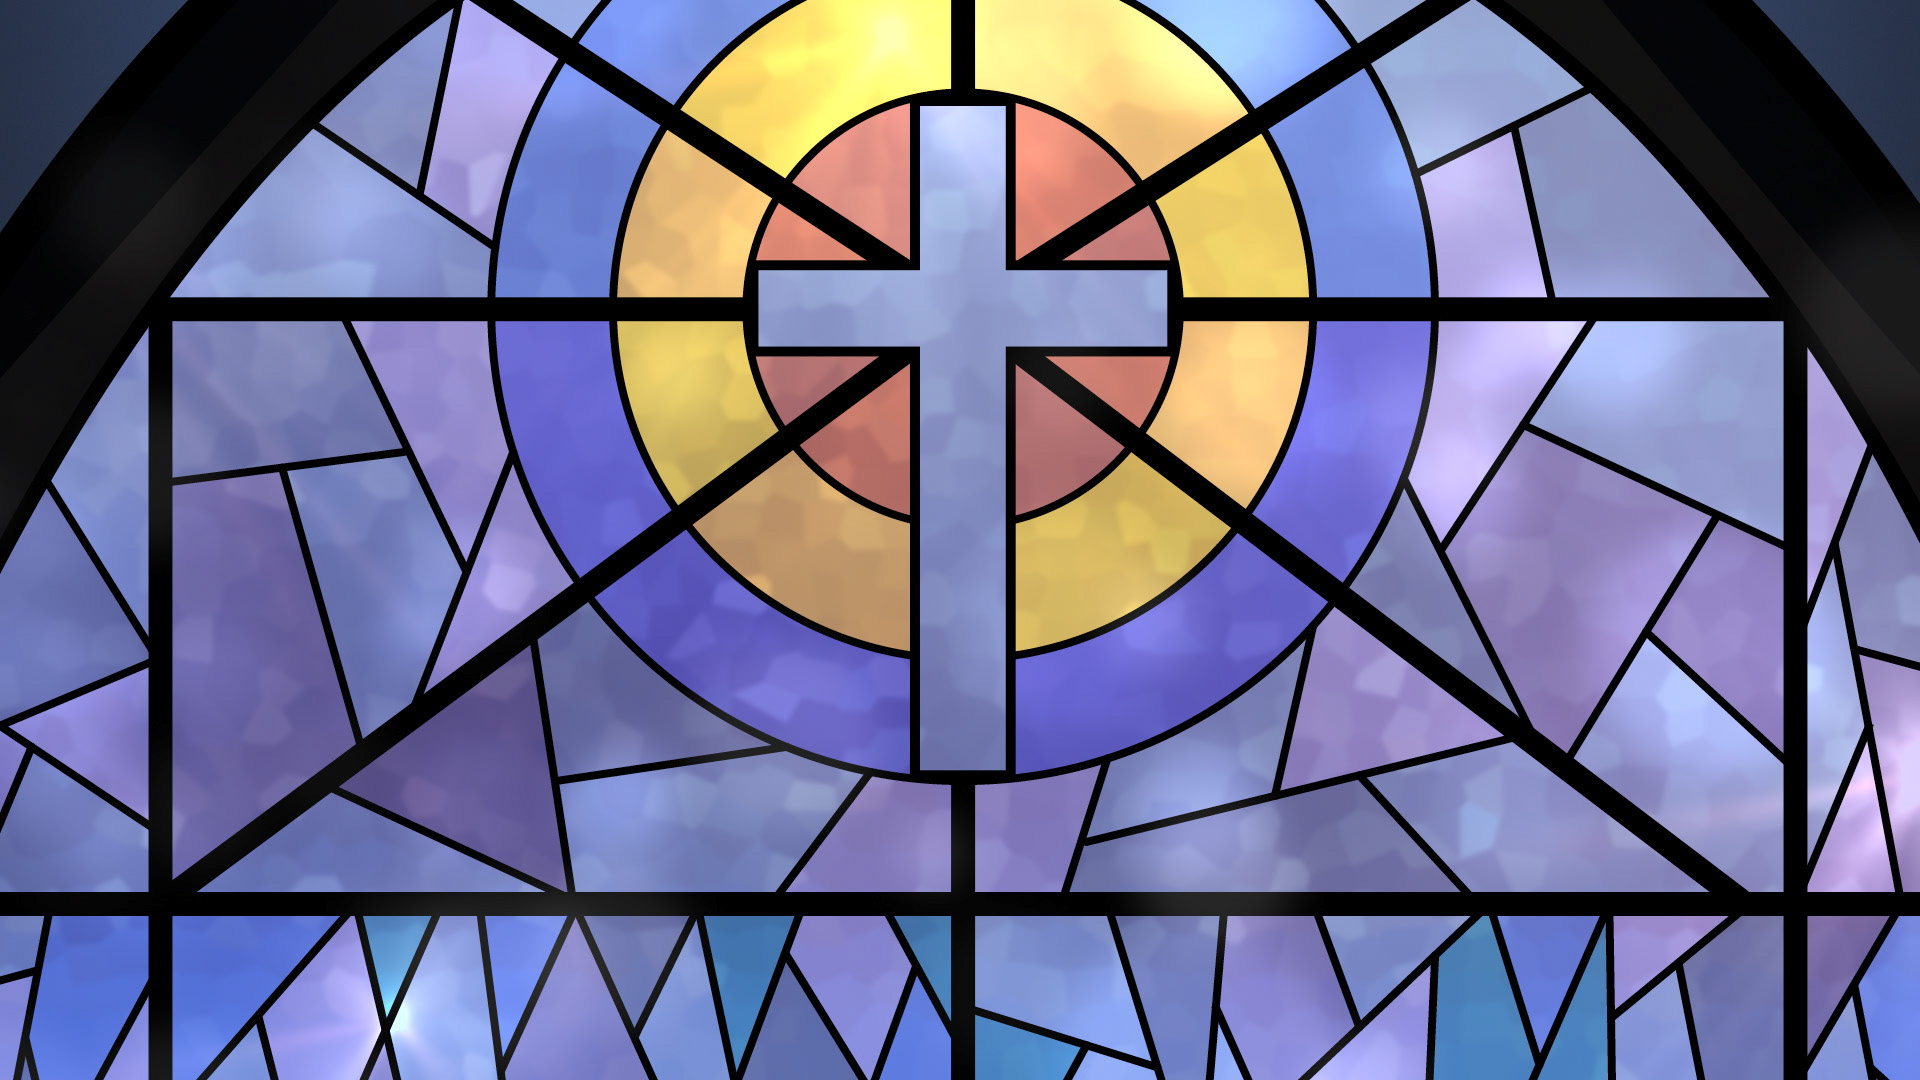 Stained Glass clipart background 16x9 Graphic (Widescreen) Background backgrounds